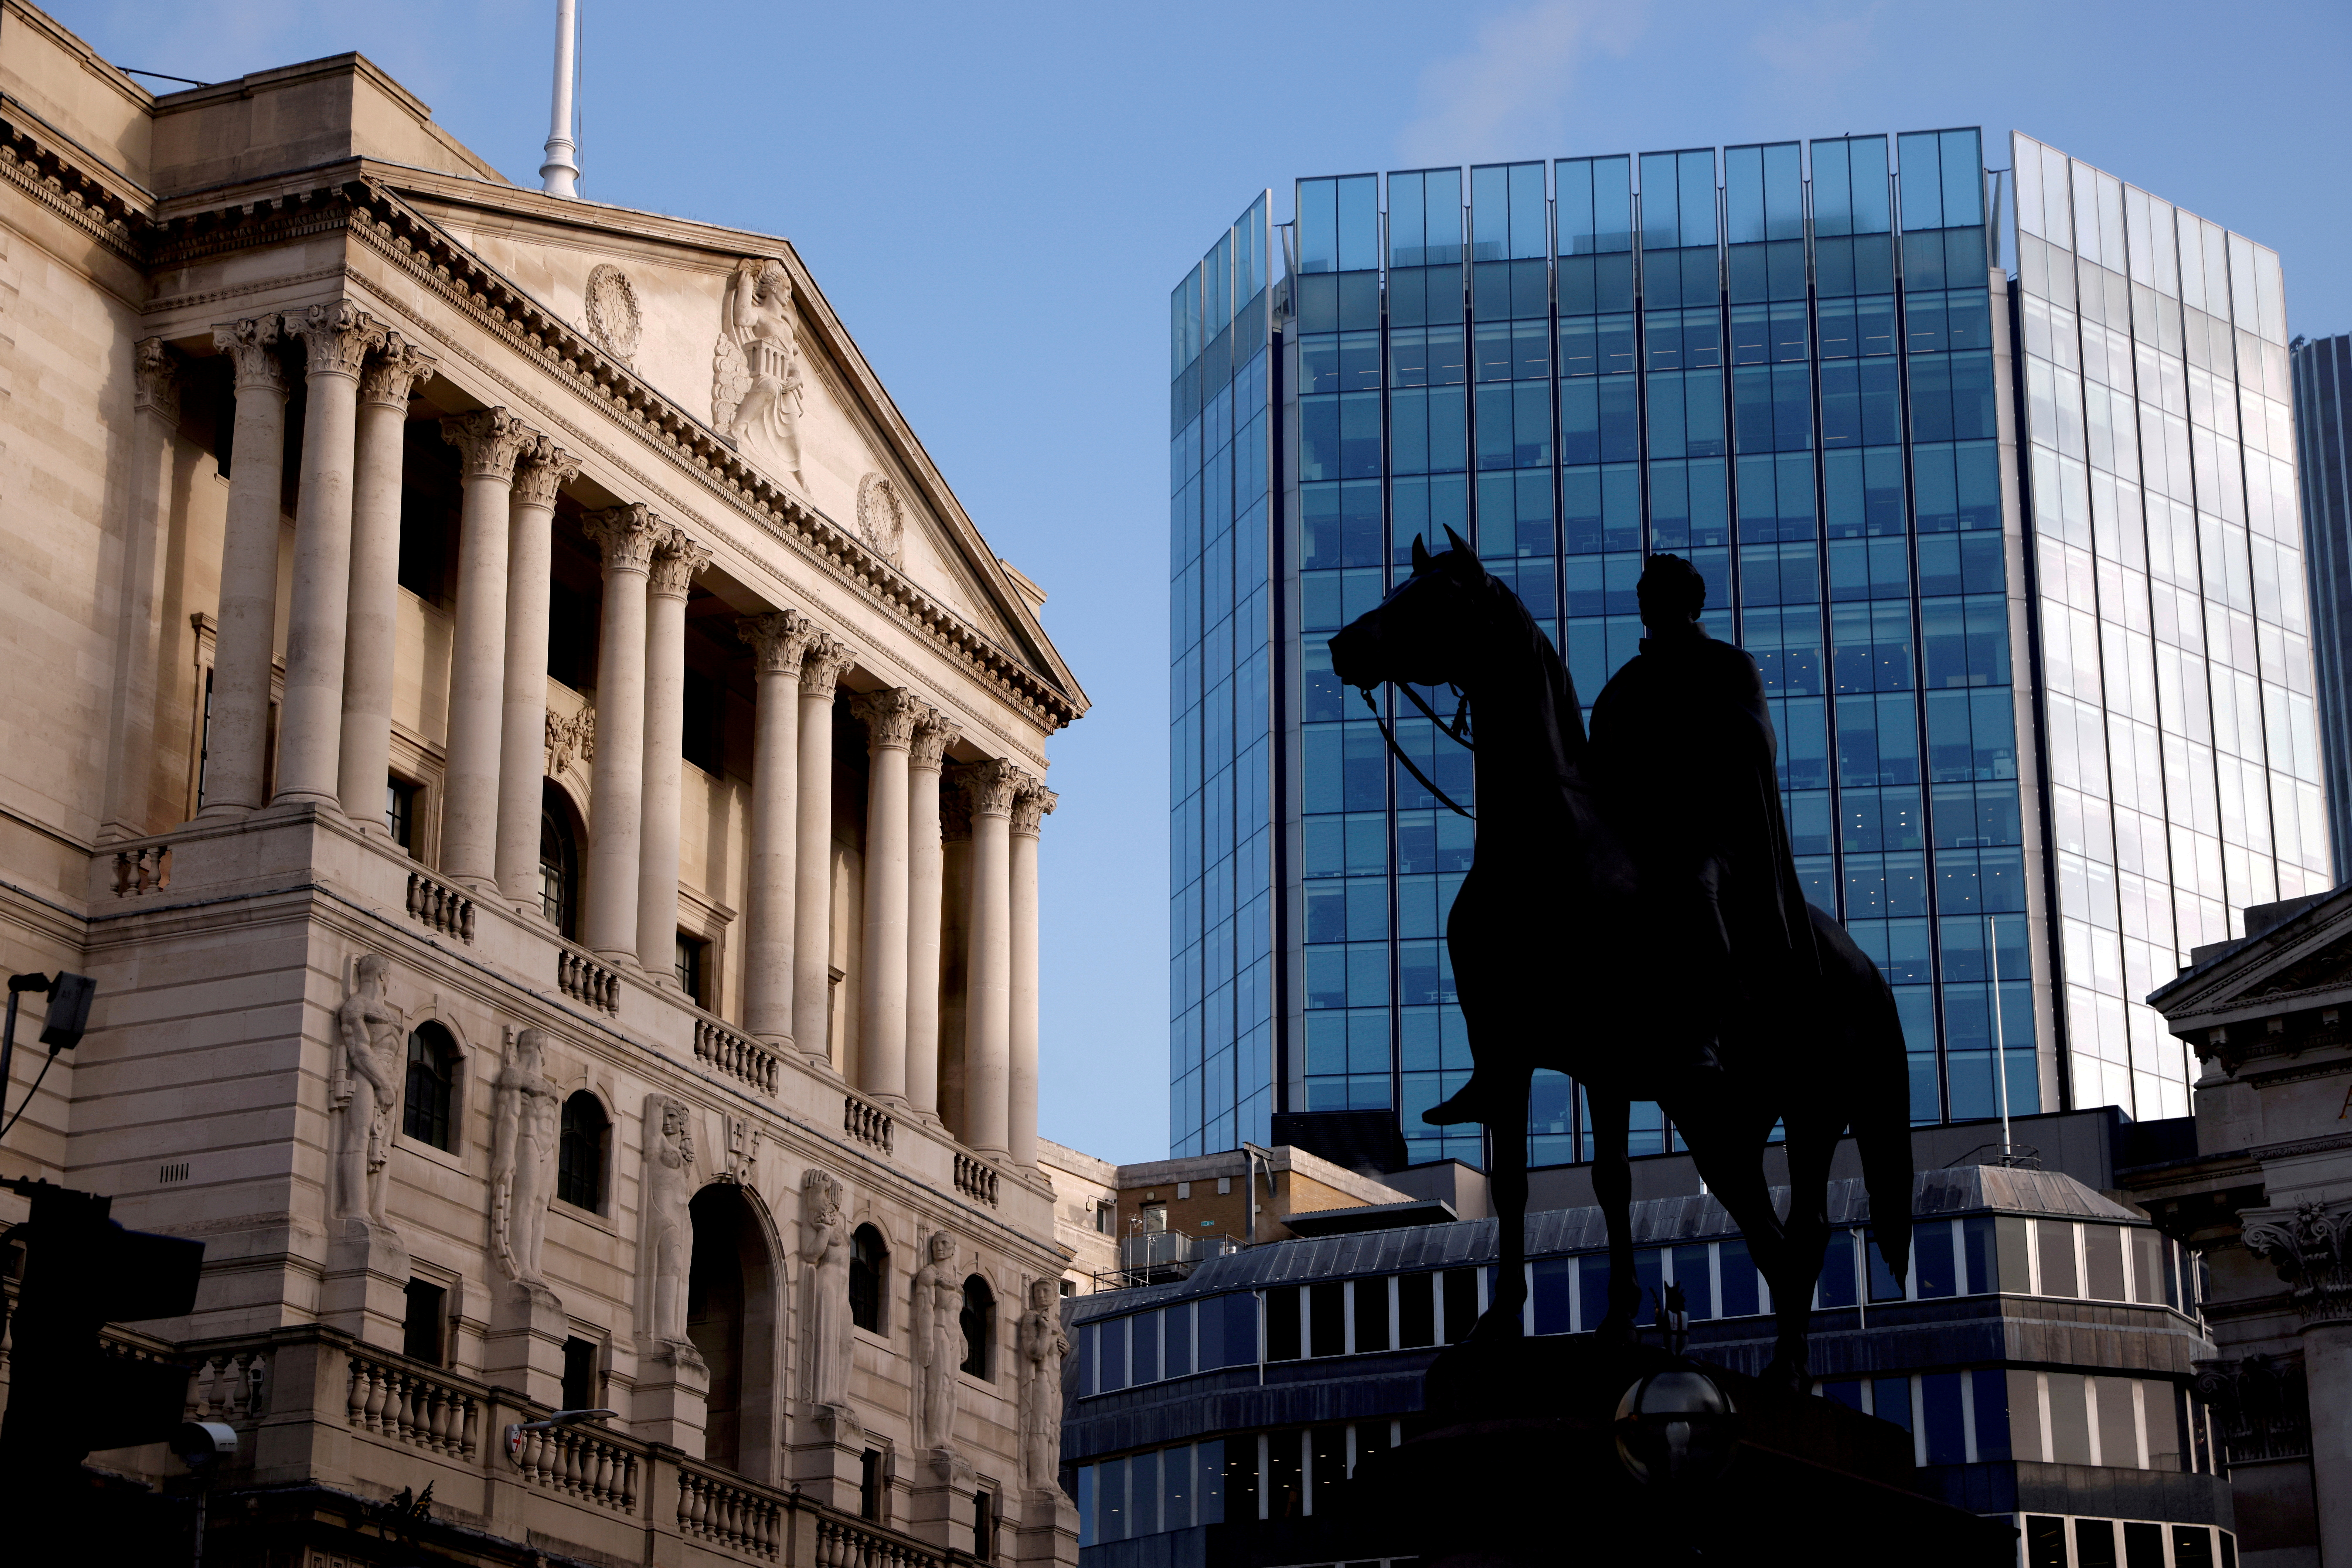 A general view shows The Bank of England in the City of London financial district in London, Britain, November 5, 2020. REUTERS/John Sibley/File Photo/File Photo